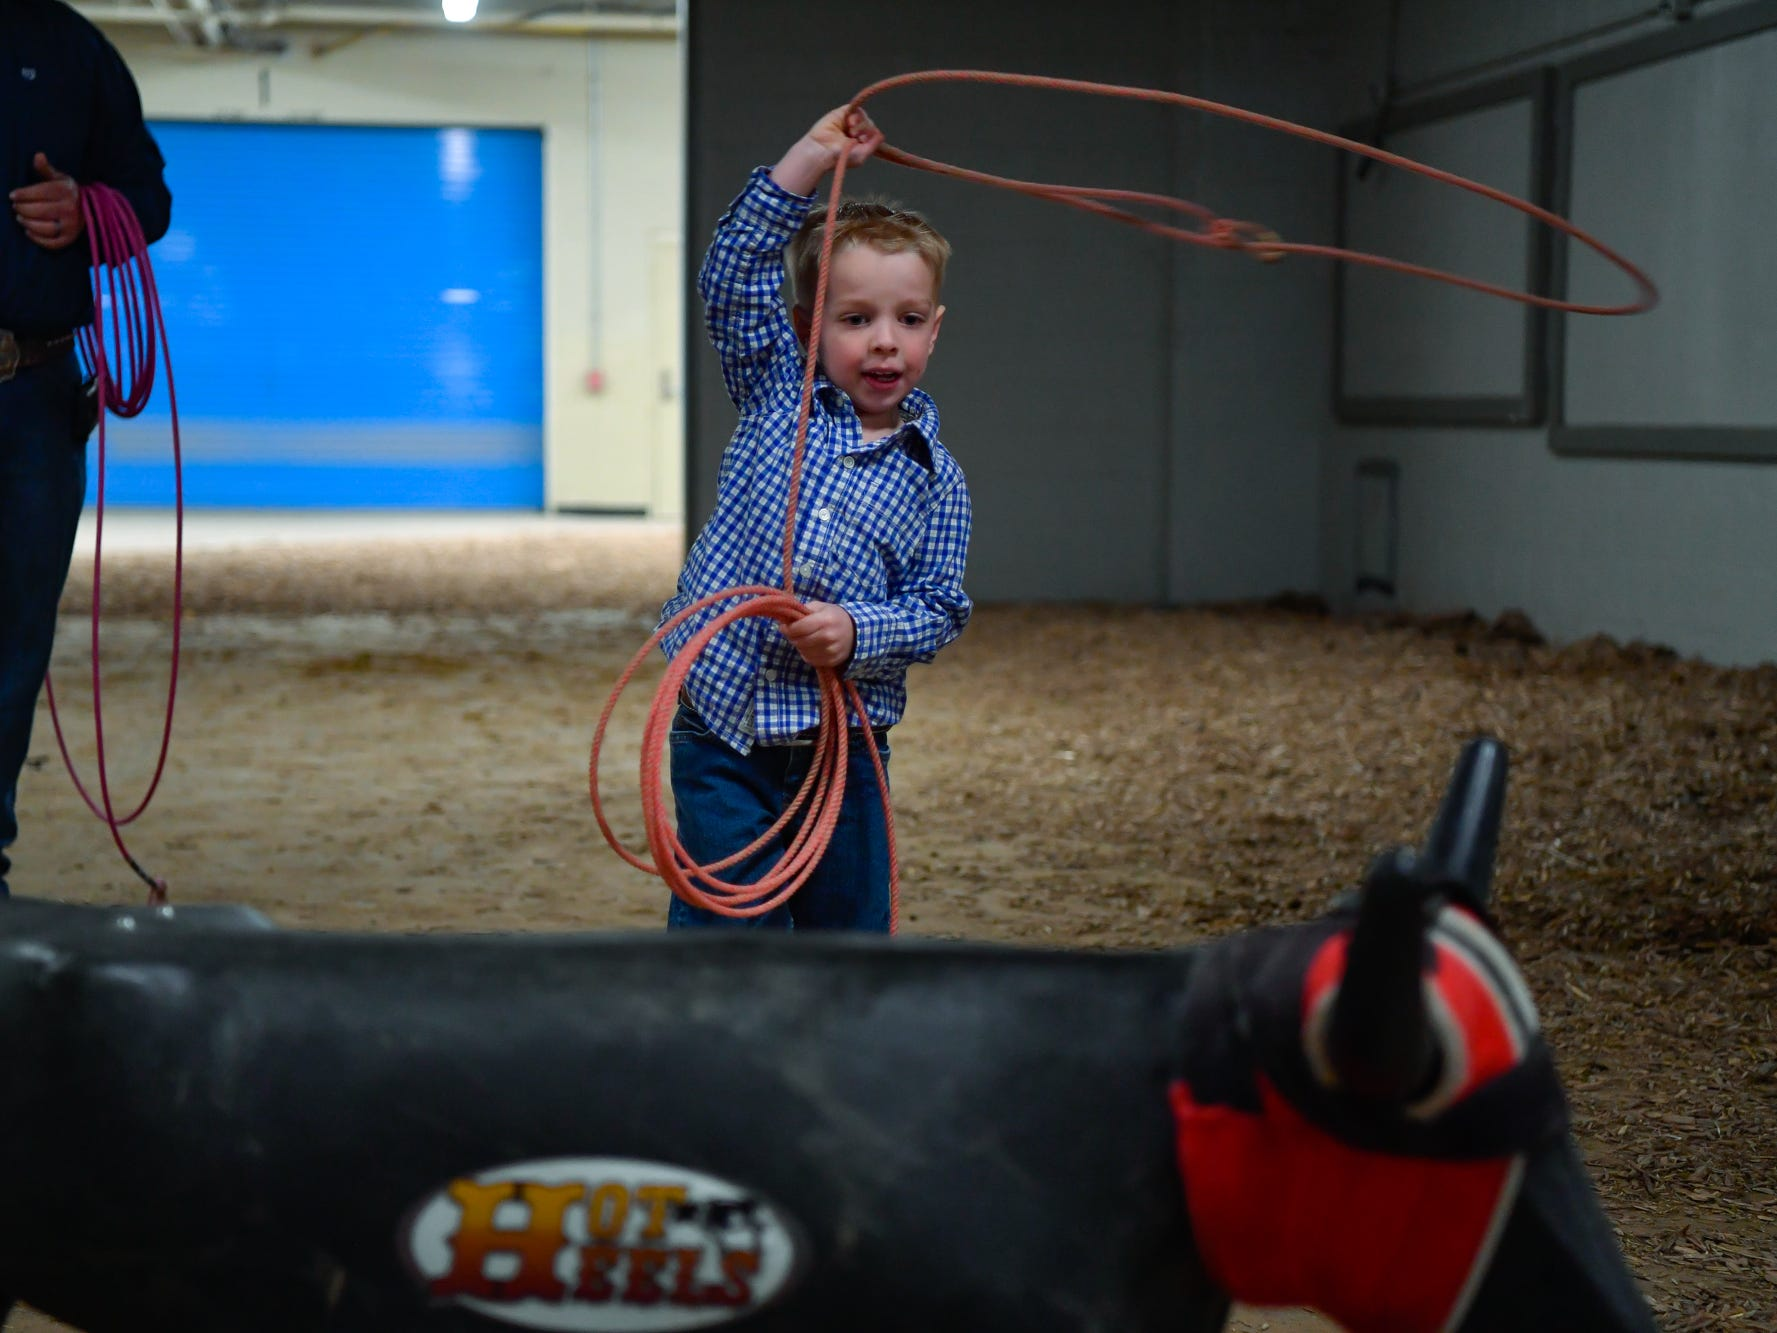 J.W. Healy, 4, of New London PA, practices his roping skills before the first night of the PRCA First Frontier Circuit Finals Rodeo at the 103rd PA Farm Show, Thursday, January 10, 2019.